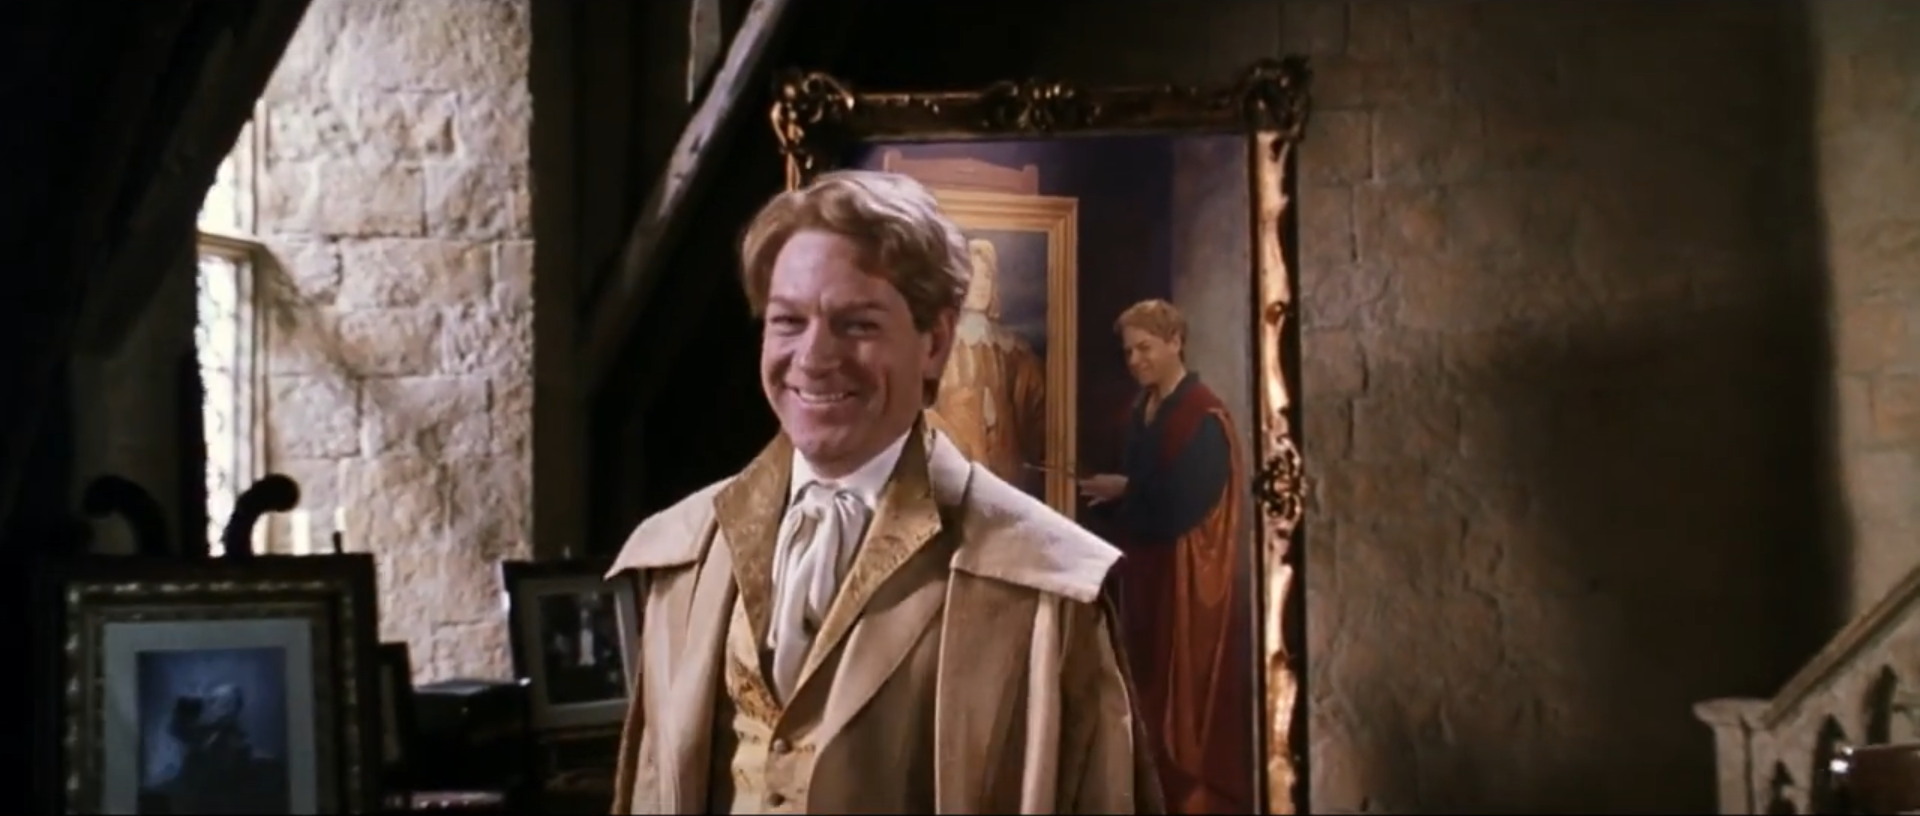 Gilderoy Lockhart Charmantestes Lächeln © 2018 Warner Bros. Ent.  All Rights Reserved.  Wizarding World™ Publishing Rights © J.K. Rowling  WIZARDING WORLD and all related characters and elements are trademarks of and © Warner Bros. Entertainment Inc.